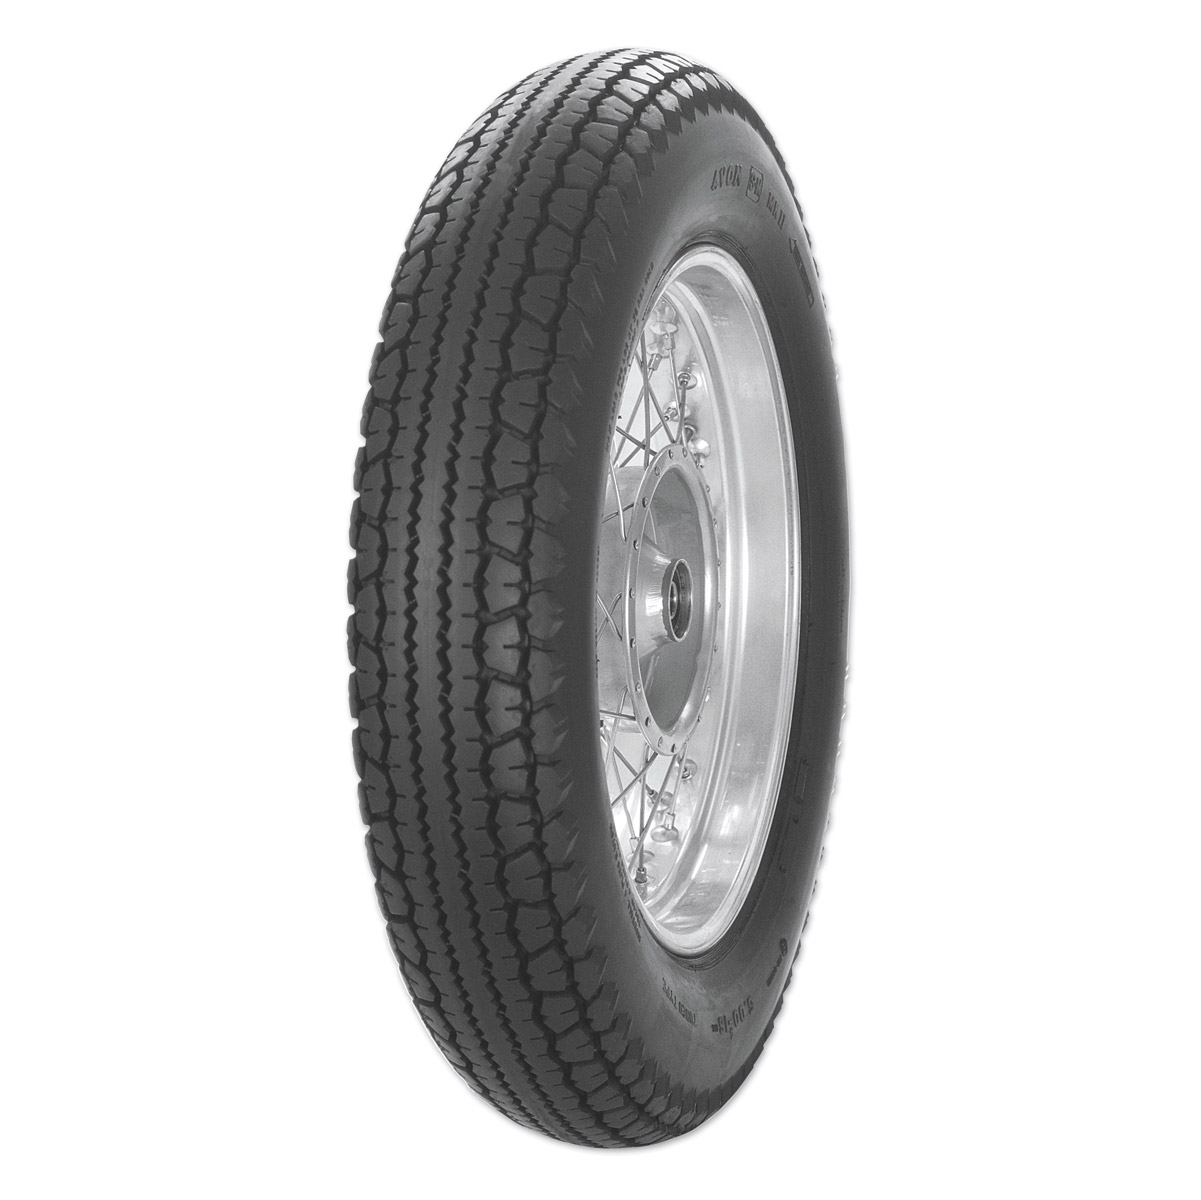 Avon Motorcycle Tires >> Avon Mkii Safety Mileage 5 00 16 Rear Tire 90000000616 Jpcycles Com